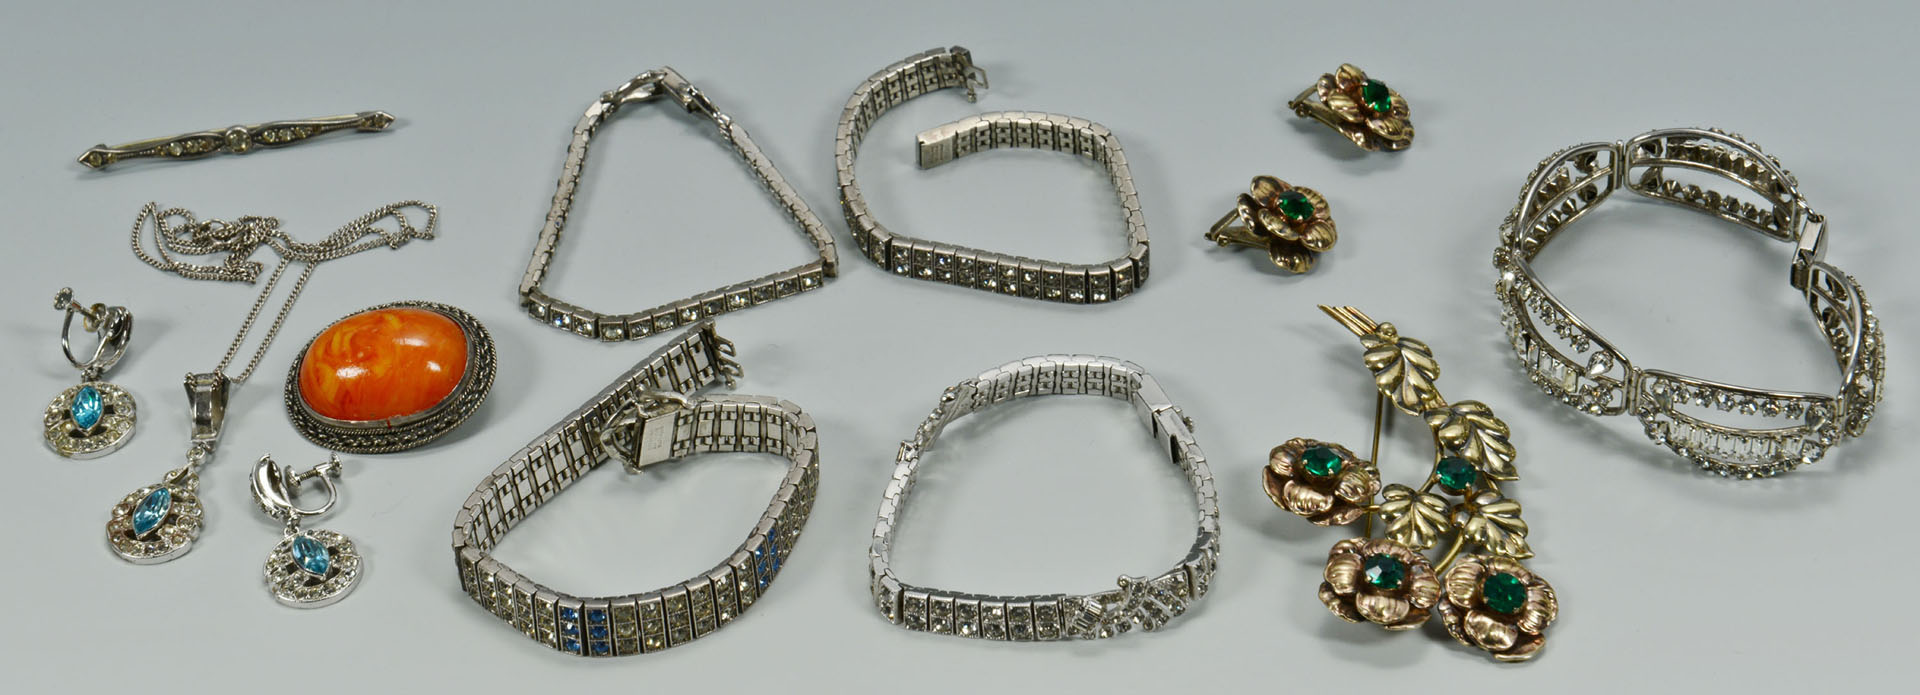 Lot 748: Vintage Sterling Jewelry with Stones